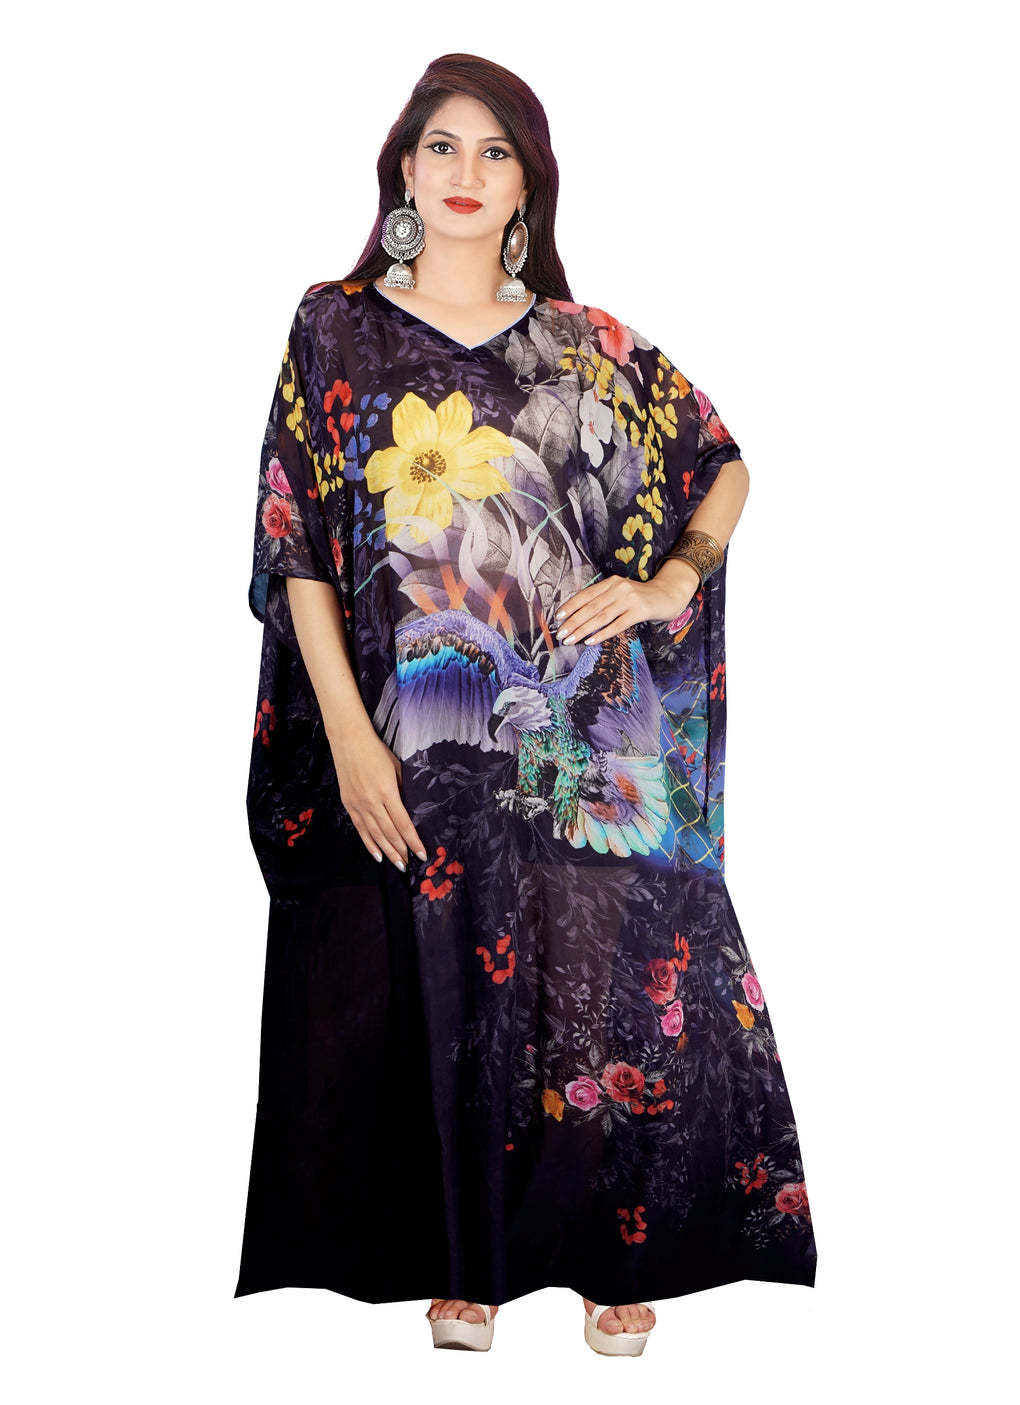 Luxury kaftan Jewelled silk kaftan Beaded kaftan Beautiful kaftan Silk kaftan dress for short women - Silk kaftan